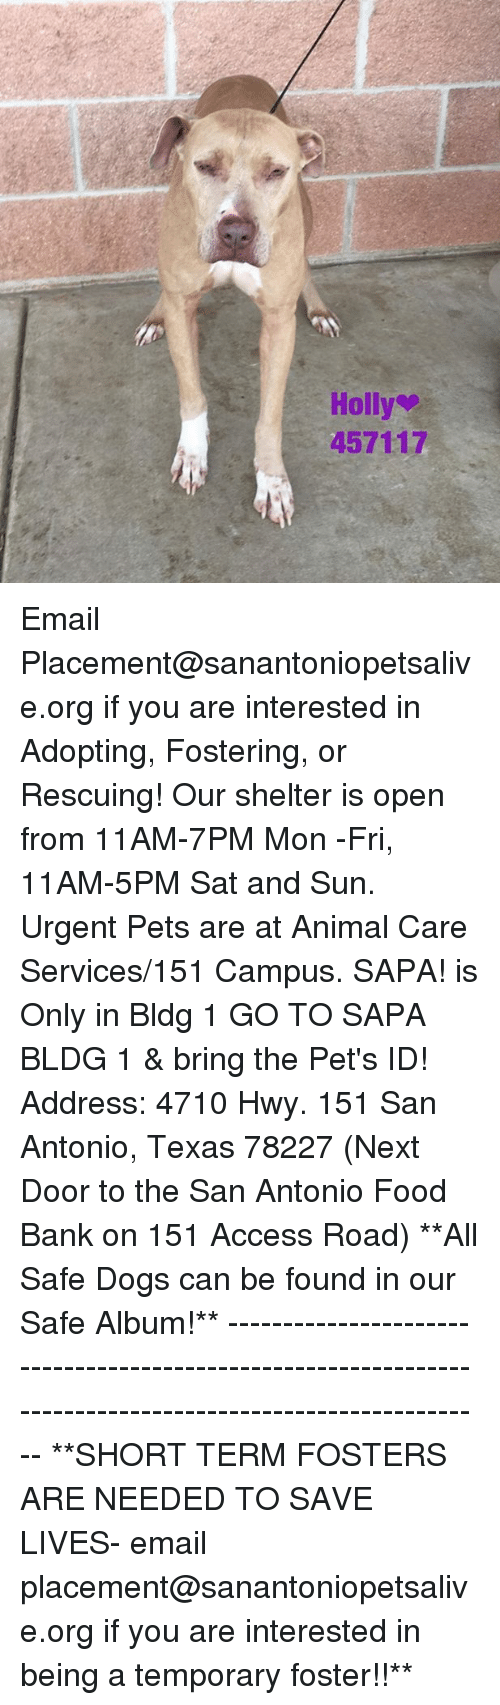 Dogs, Food, and Memes: Holly  457117 Email Placement@sanantoniopetsalive.org if you are interested in Adopting, Fostering, or Rescuing!  Our shelter is open from 11AM-7PM Mon -Fri, 11AM-5PM Sat and Sun.  Urgent Pets are at Animal Care Services/151 Campus. SAPA! is Only in Bldg 1 GO TO SAPA BLDG 1 & bring the Pet's ID! Address: 4710 Hwy. 151 San Antonio, Texas 78227 (Next Door to the San Antonio Food Bank on 151 Access Road)  **All Safe Dogs can be found in our Safe Album!** ---------------------------------------------------------------------------------------------------------- **SHORT TERM FOSTERS ARE NEEDED TO SAVE LIVES- email placement@sanantoniopetsalive.org if you are interested in being a temporary foster!!**